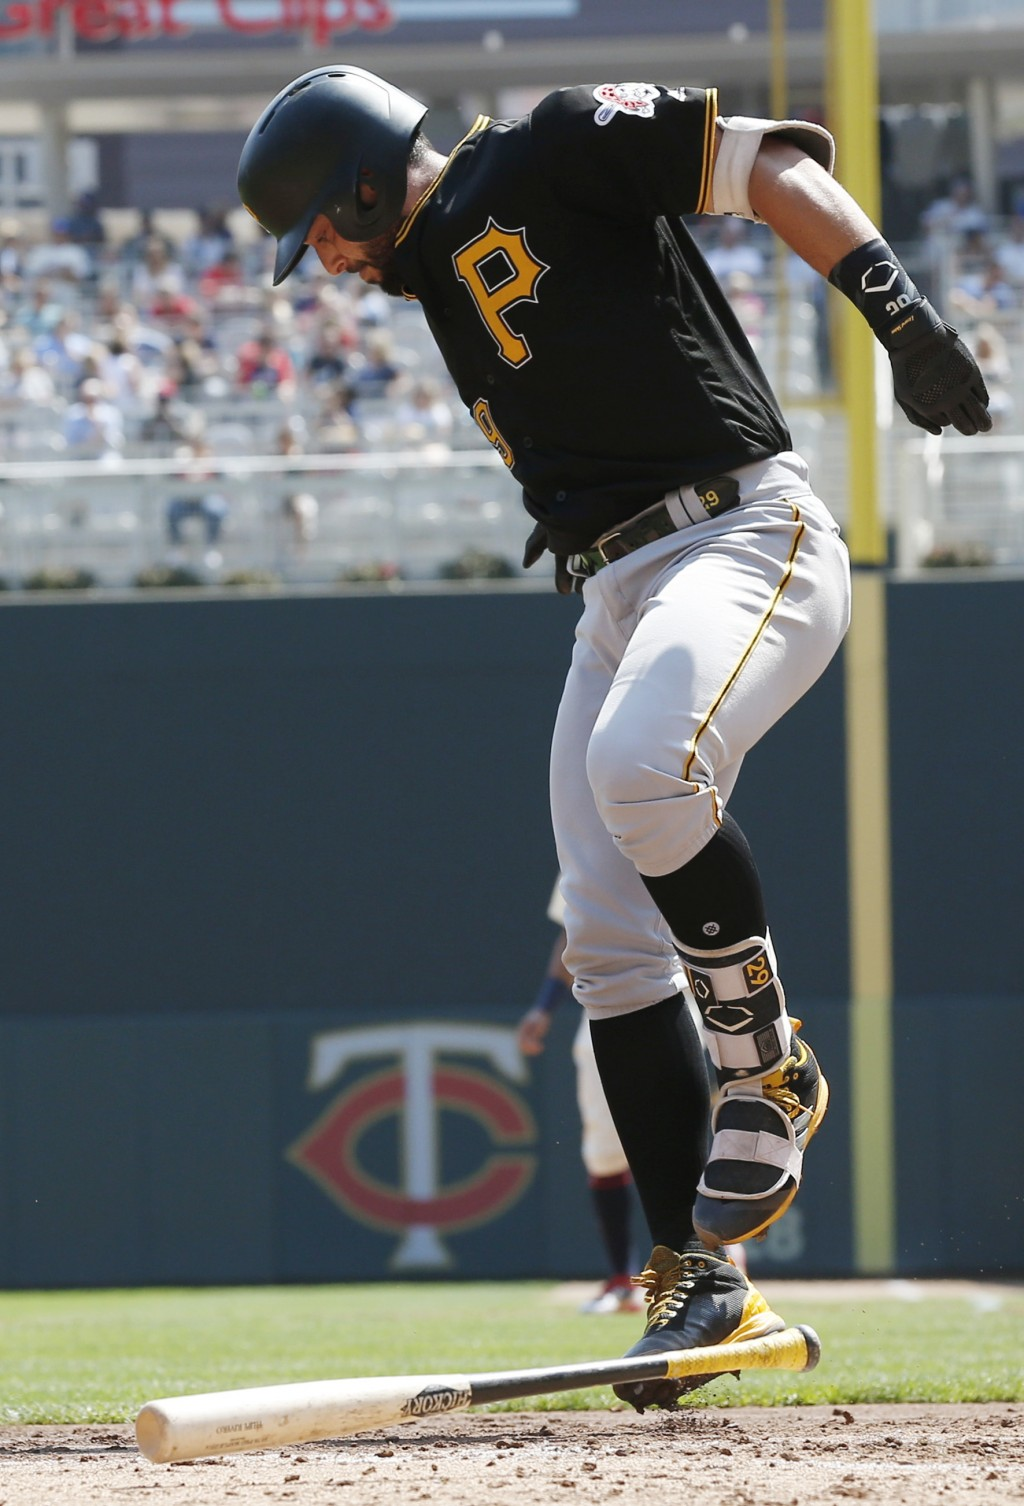 Pittsburgh Pirates' Francisco Cervelli reacts after fouling a ball off his leg on a pitch by Minnesota Twins pitcher Jose Berrios in the third inning ...